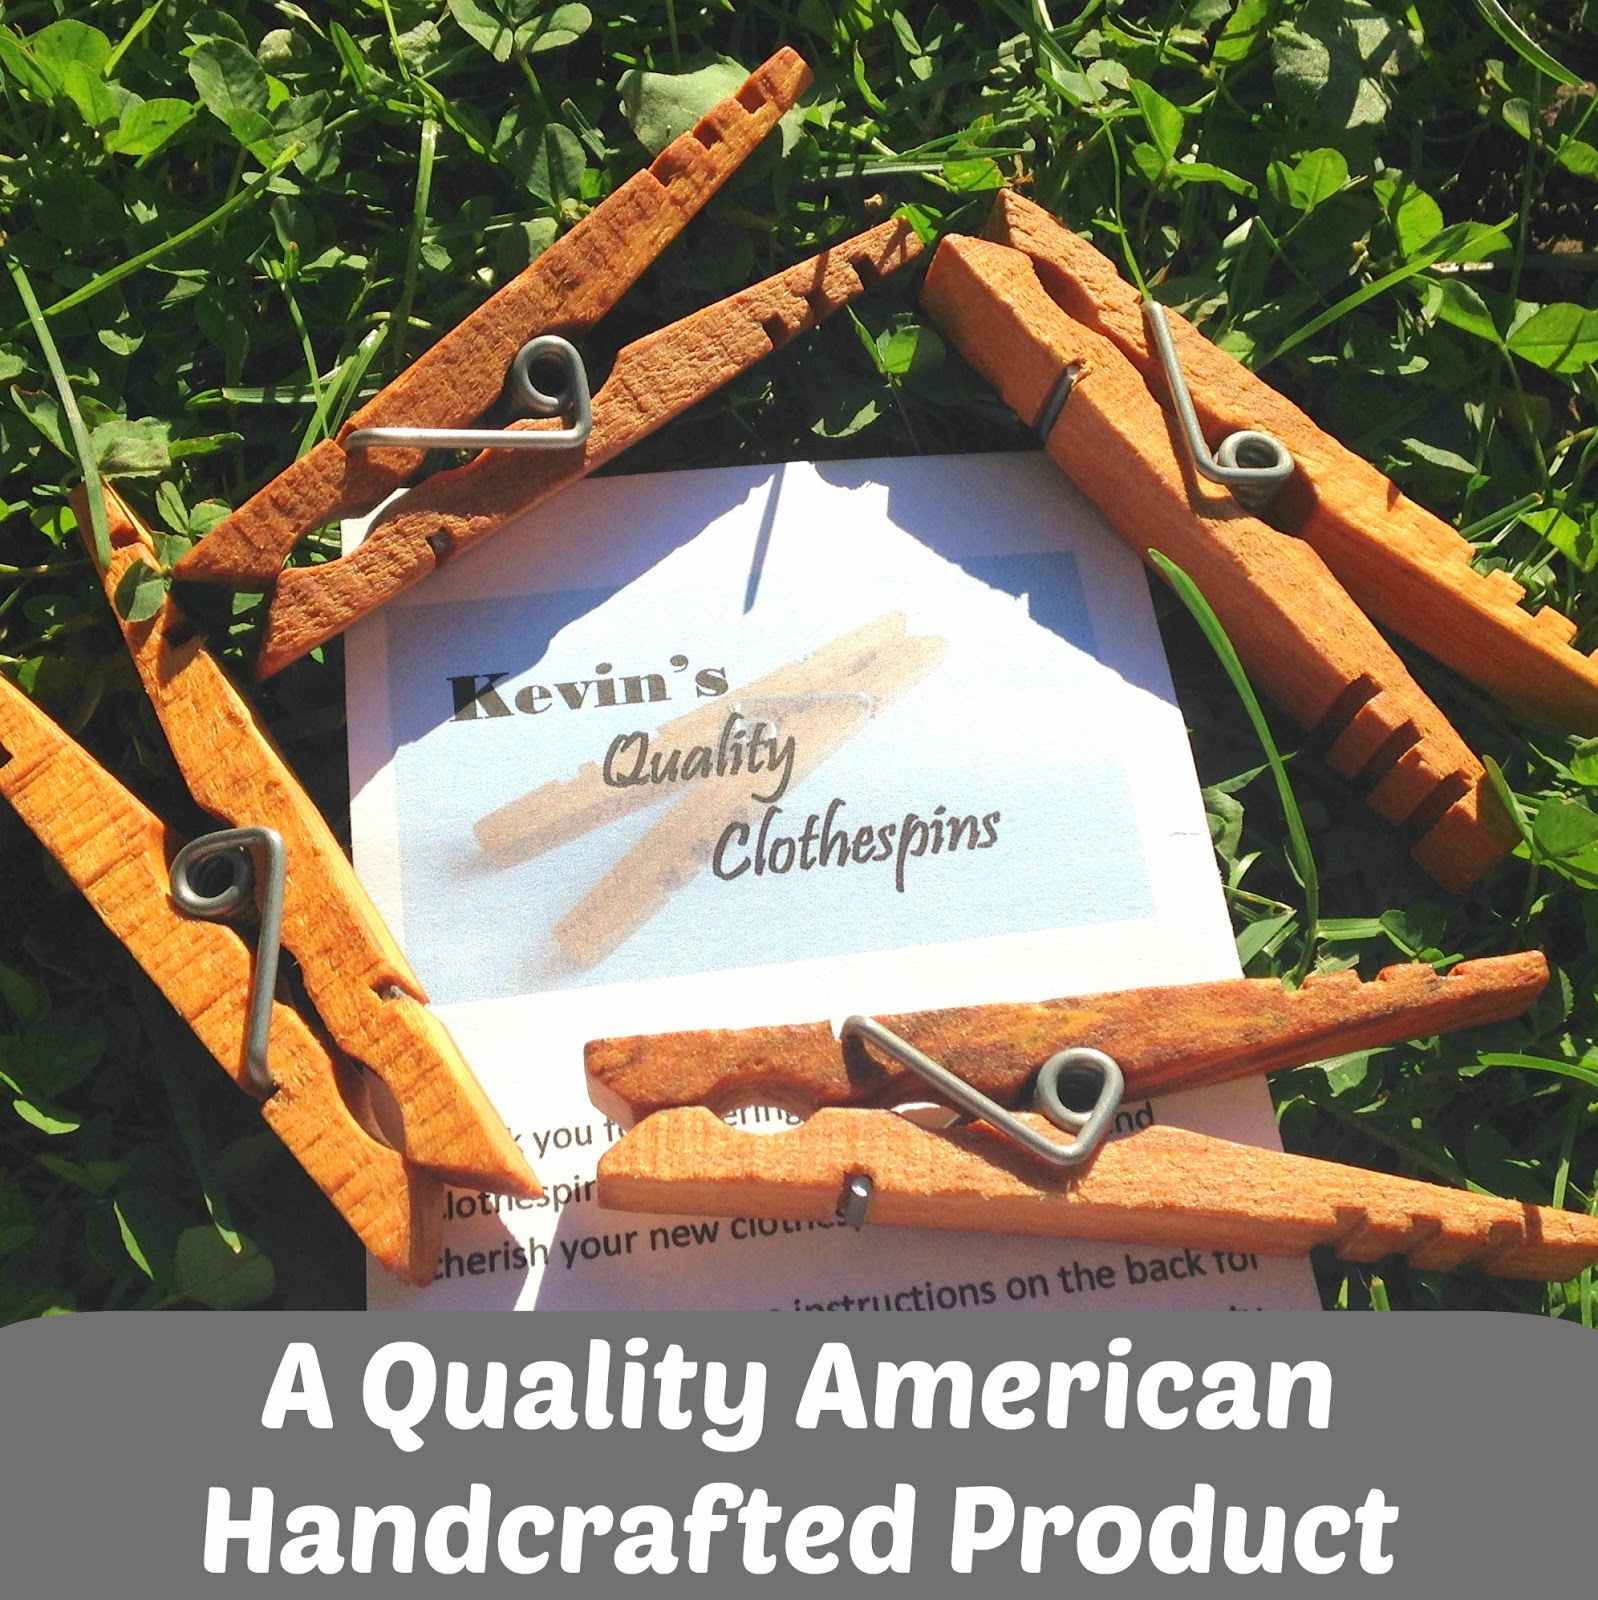 Kevin's Quality Clothespins – A Quality American Handcrafted Product